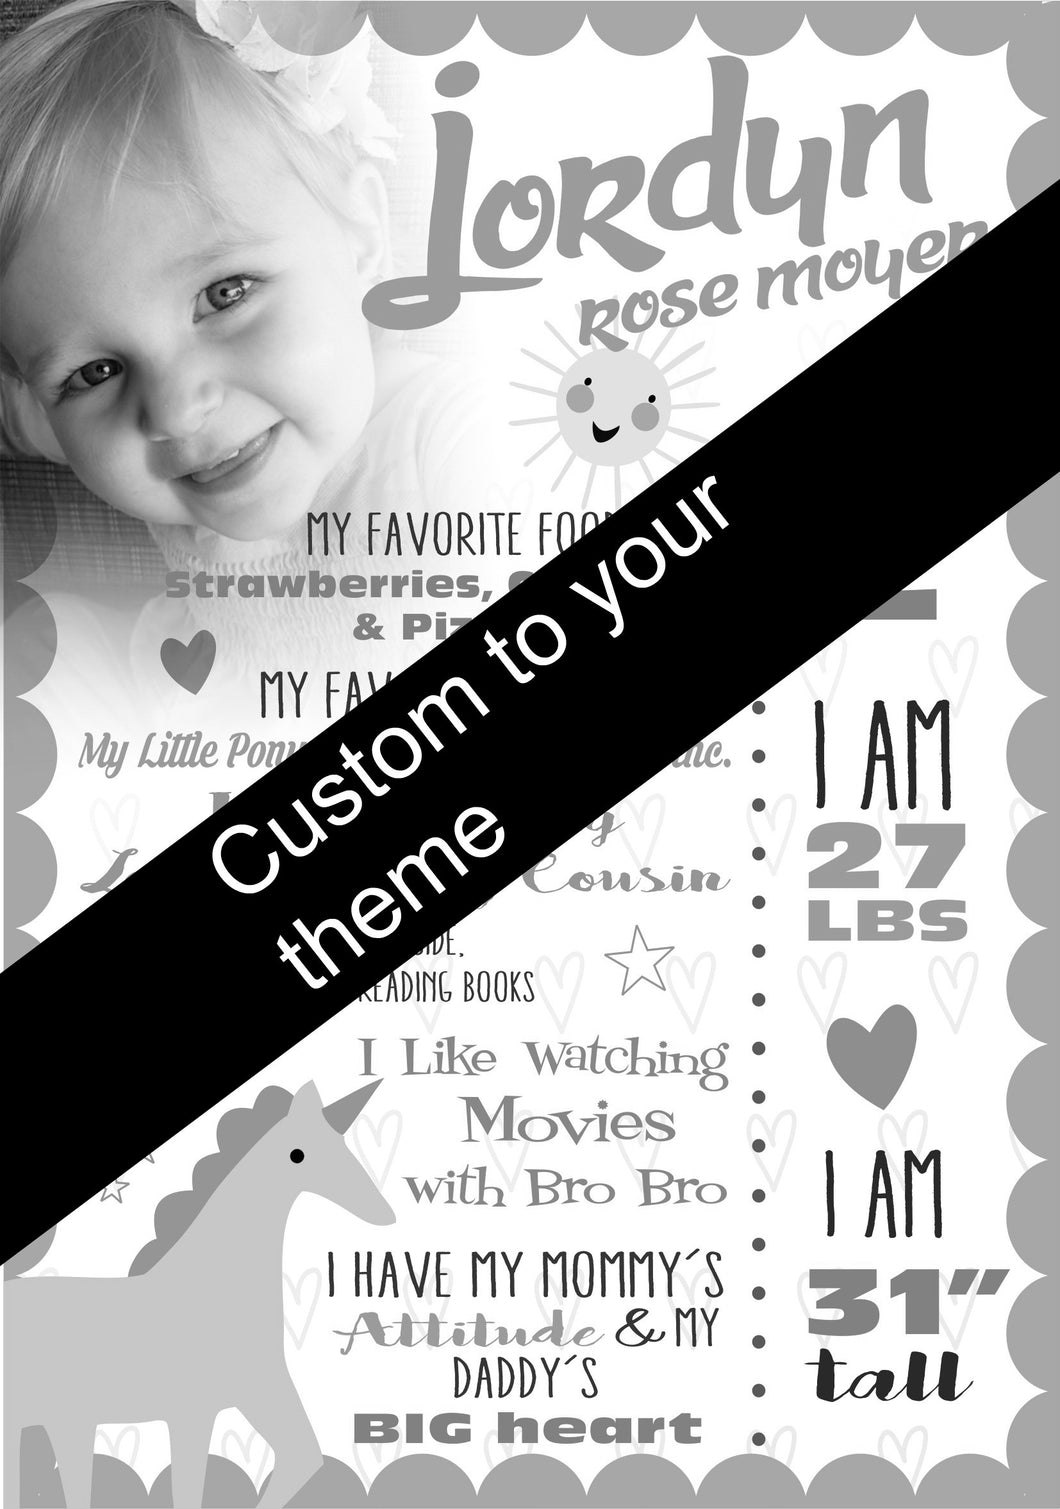 Fun in the sun! Custom memory board. - Little Rose Party Company